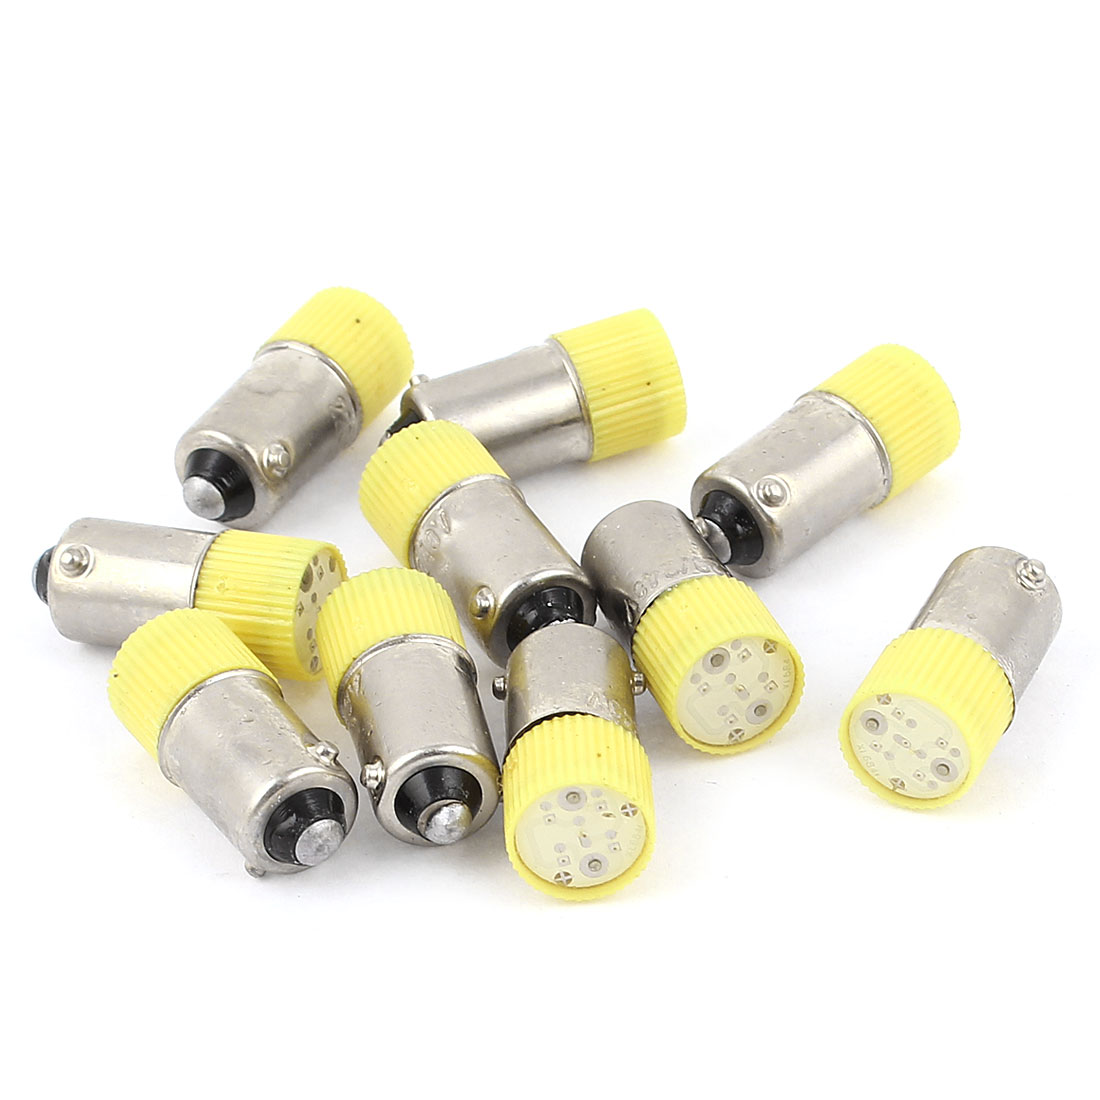 10 Pieces 10mm Round Head Yellow LED Light Signal Indicator Lamp AC 220V/240V 3A